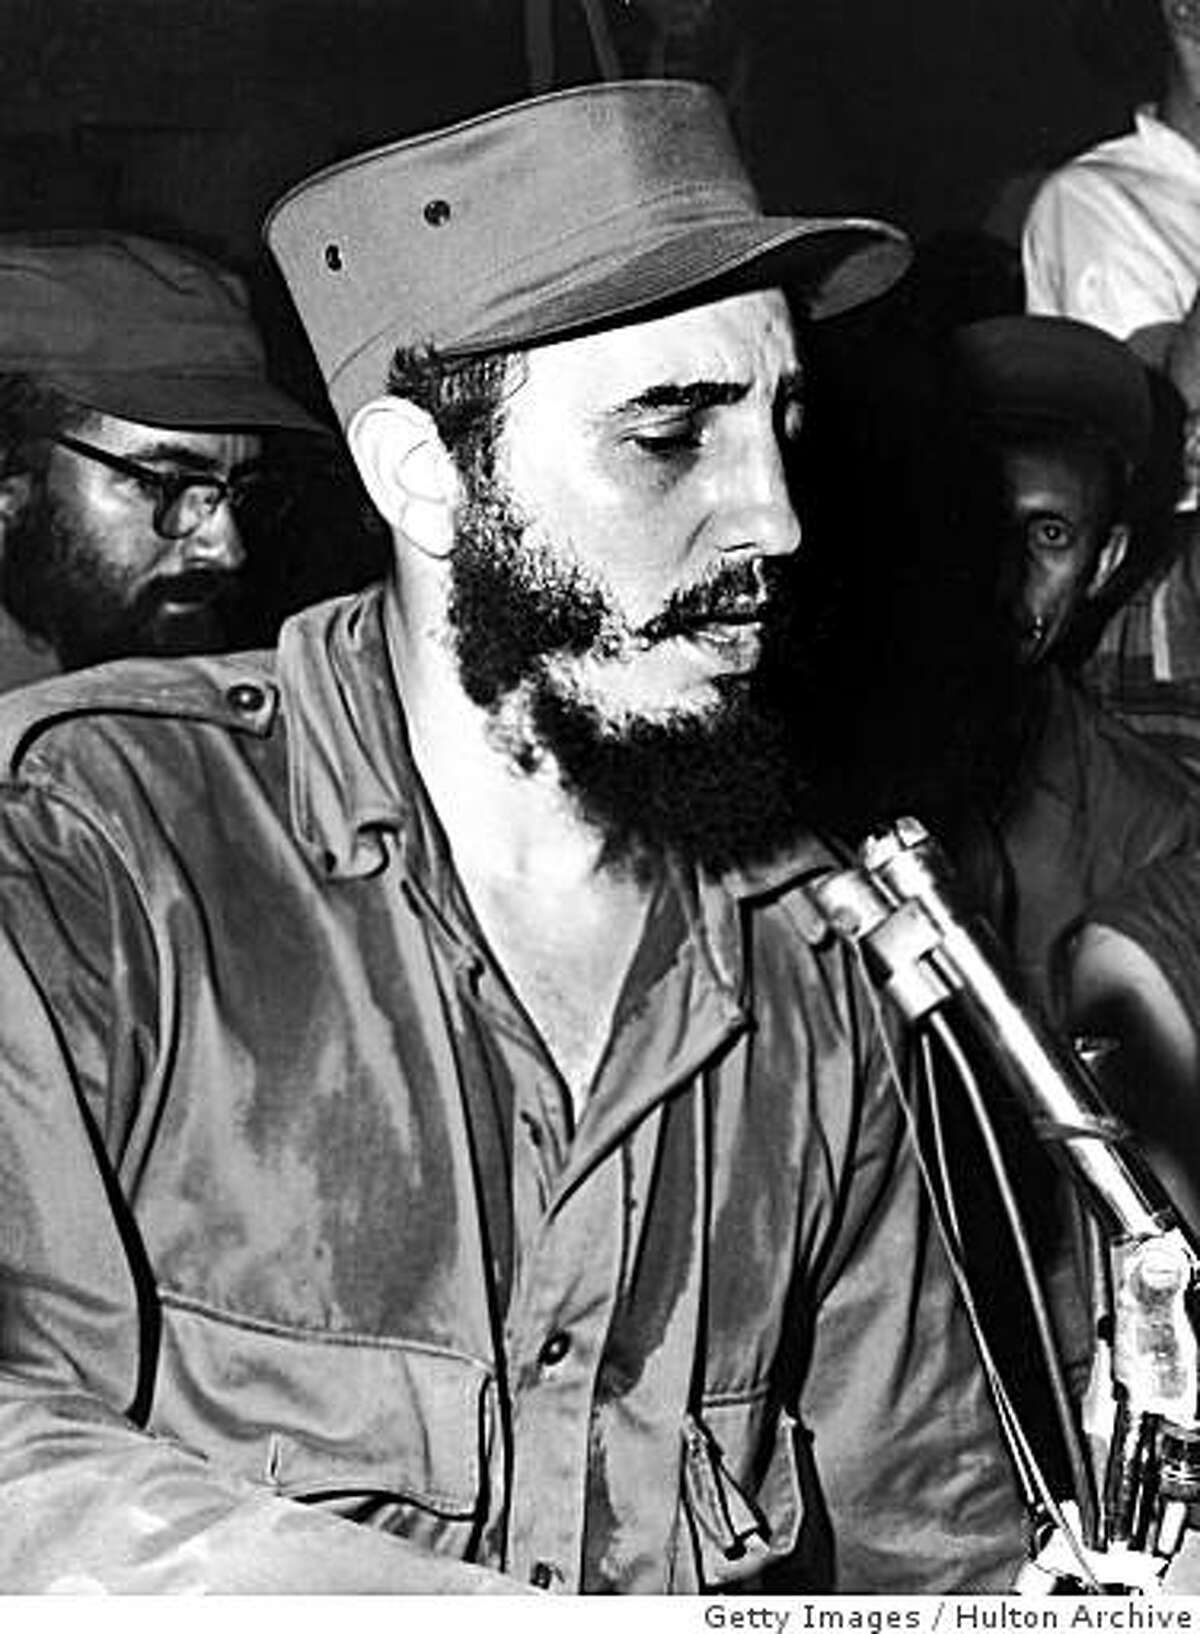 CAMAGUEY, CUBA: (FILE PHOTO) circa 1959: Cuban communist leader Fidel Castro, wearing military fatigues, sits in front of a microphone while speaking to the people of Camaguey, Cuba. It has been reported that Fidel Castro has resigned as Cuban president after being in power for several decades. He was first sworn in on December 2, 1976 but due to illness recently transferred his duties to his younger brother Raul Modesto Castro Ruz. (Photo by Hulton Archive/Getty Images)